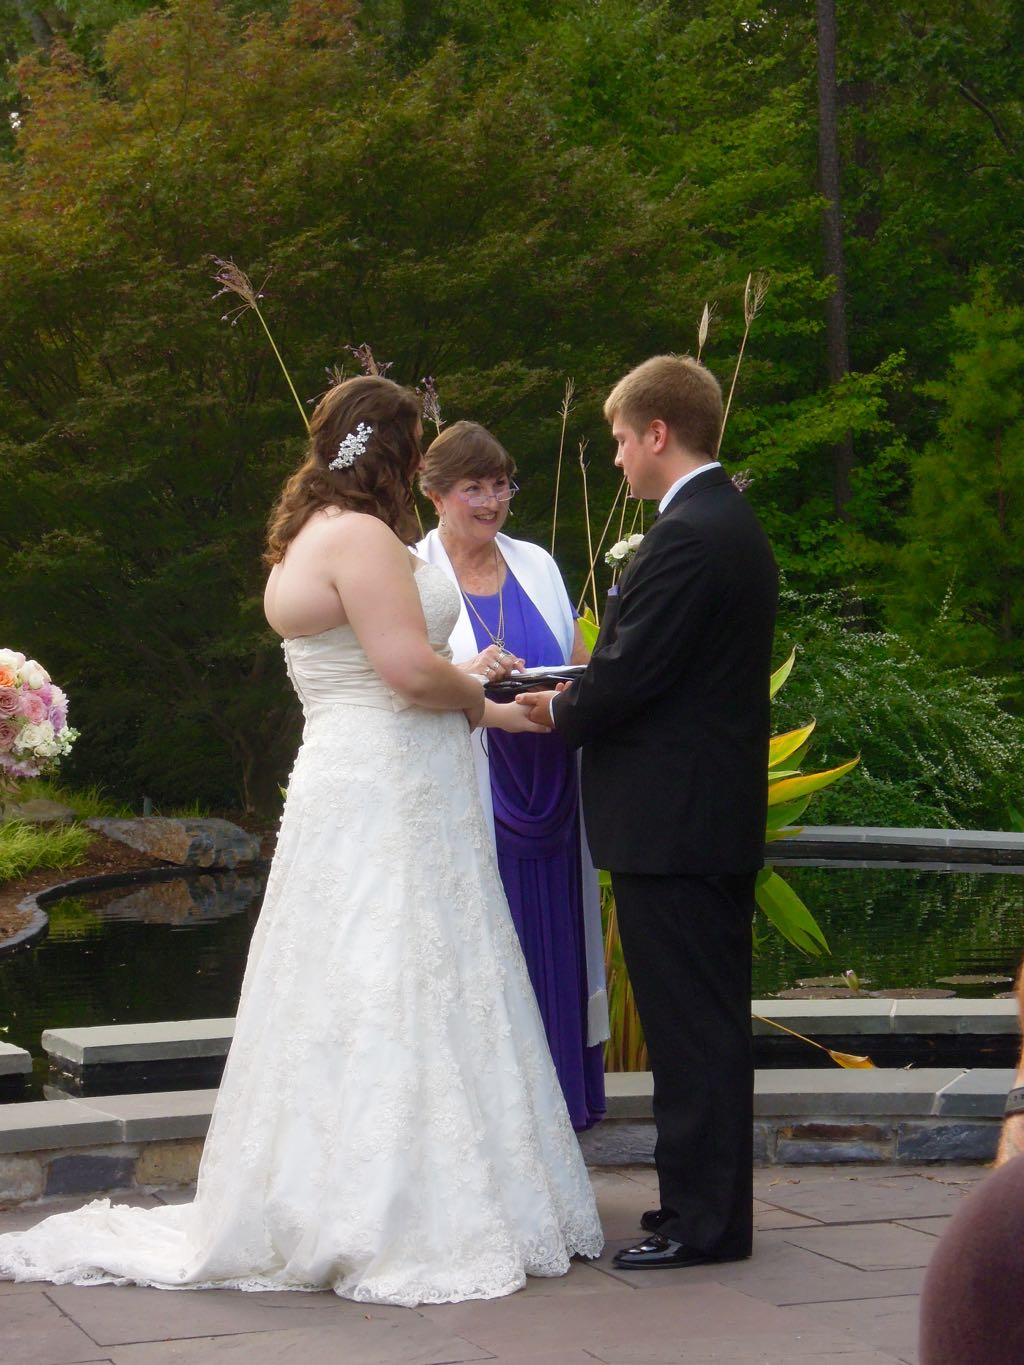 jessica and neils beautiful wedding at police wedding rings And now for the vows and exchange of rings They each read their words to each other from my book